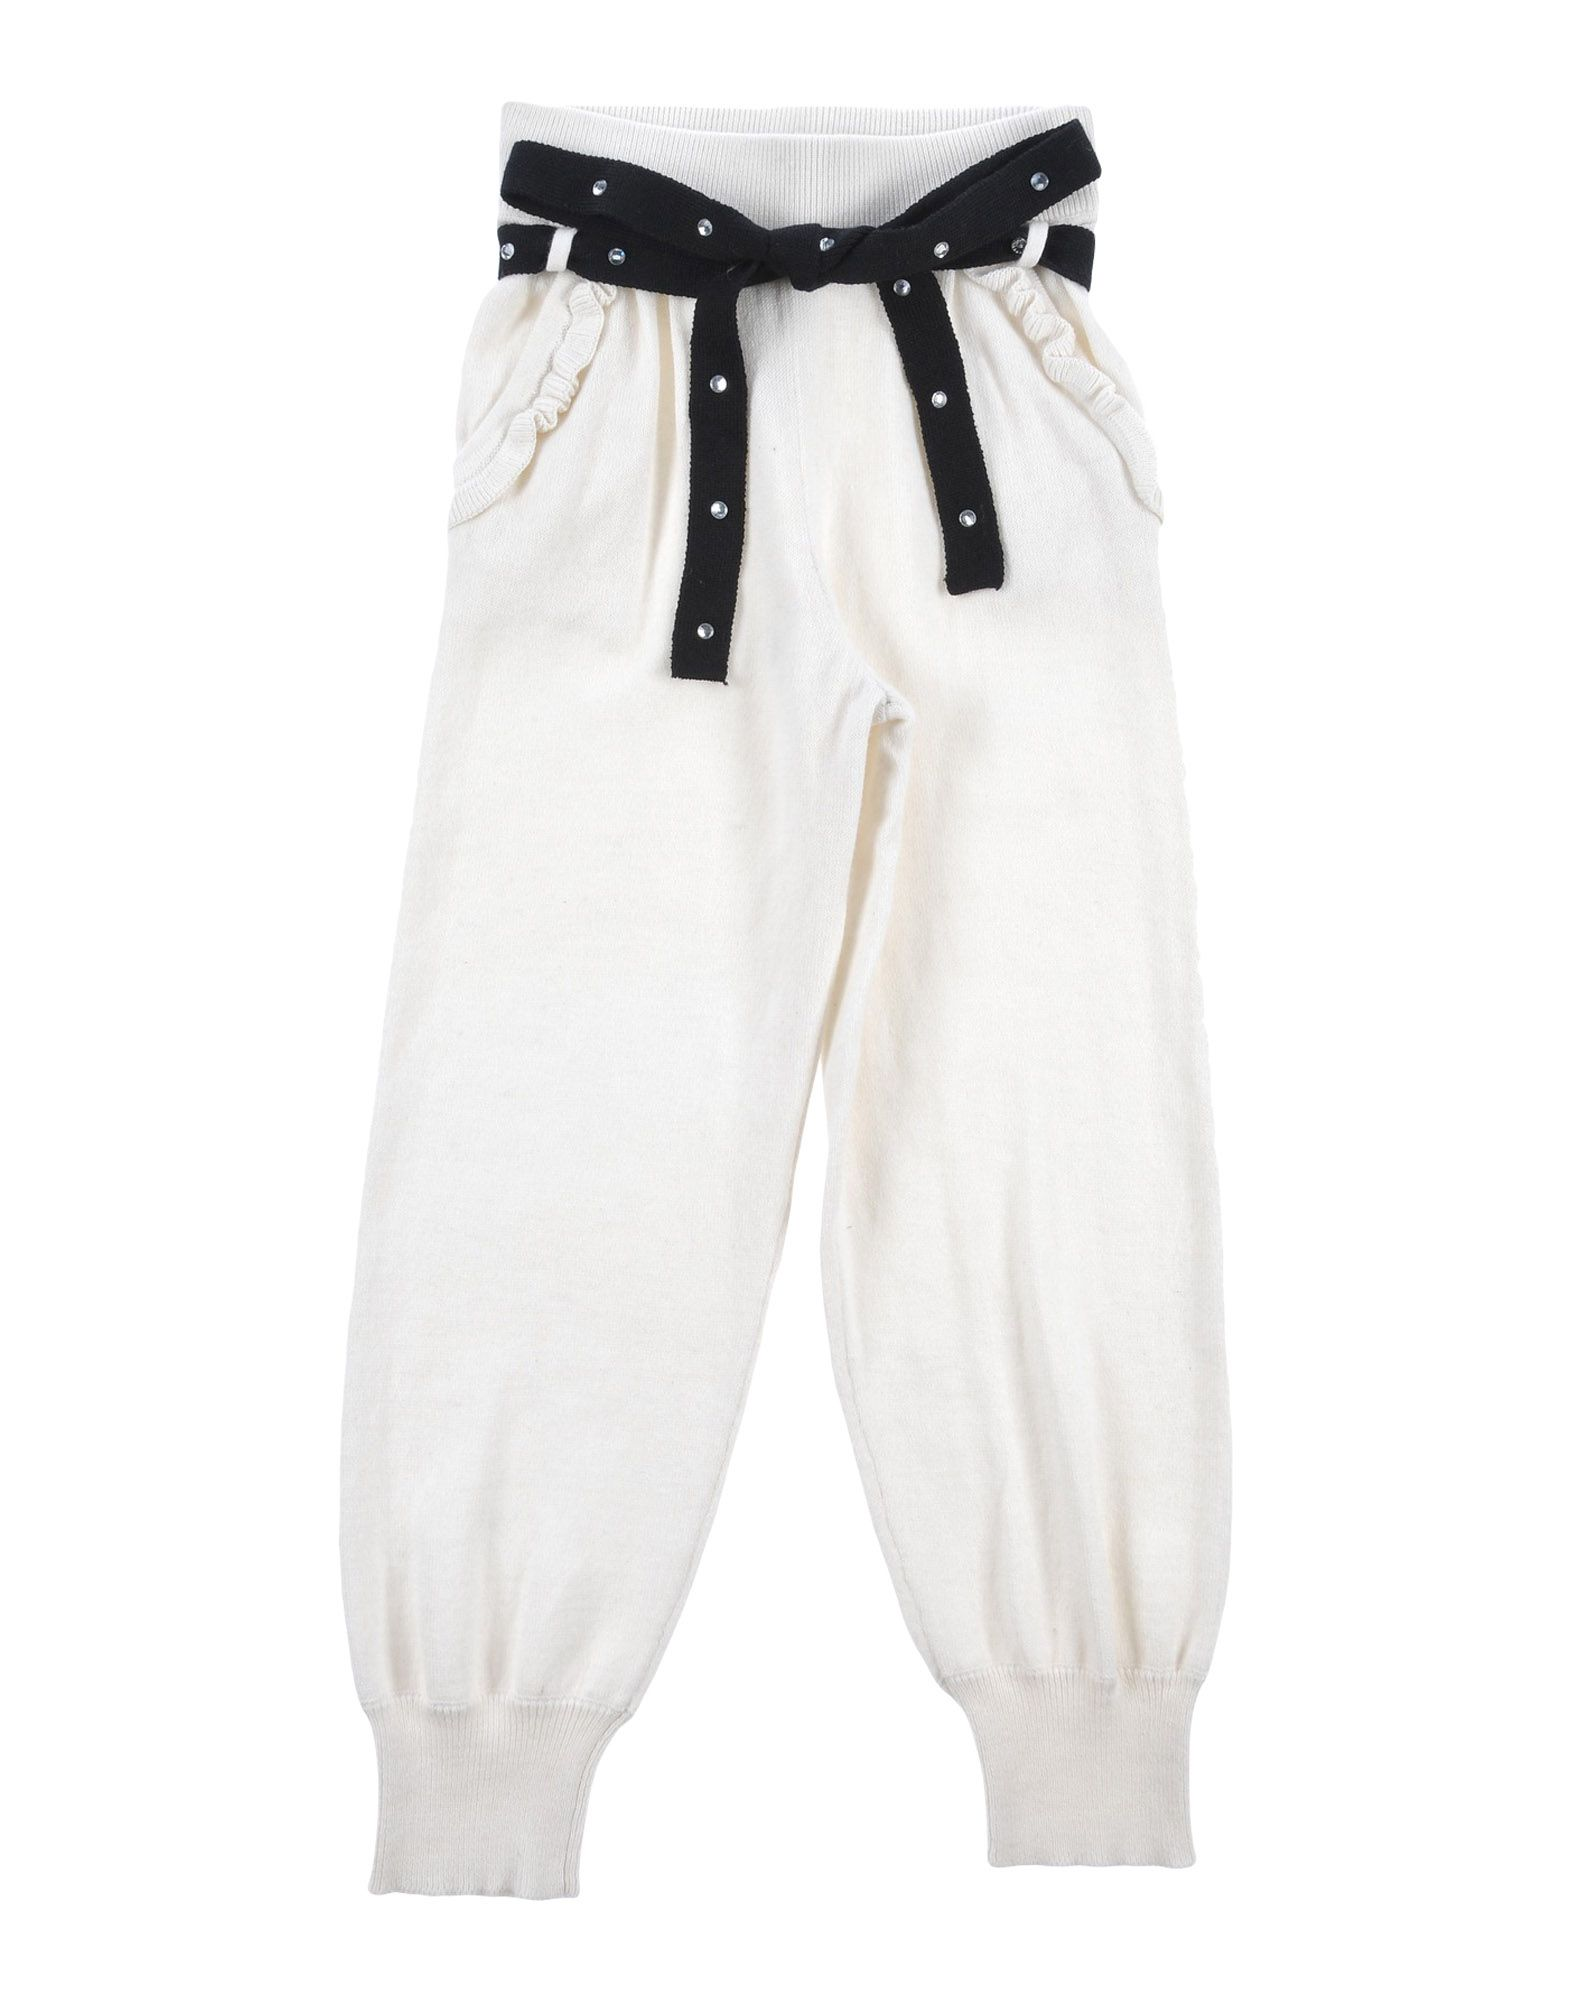 MONNALISA CHIC Casual Pants in White